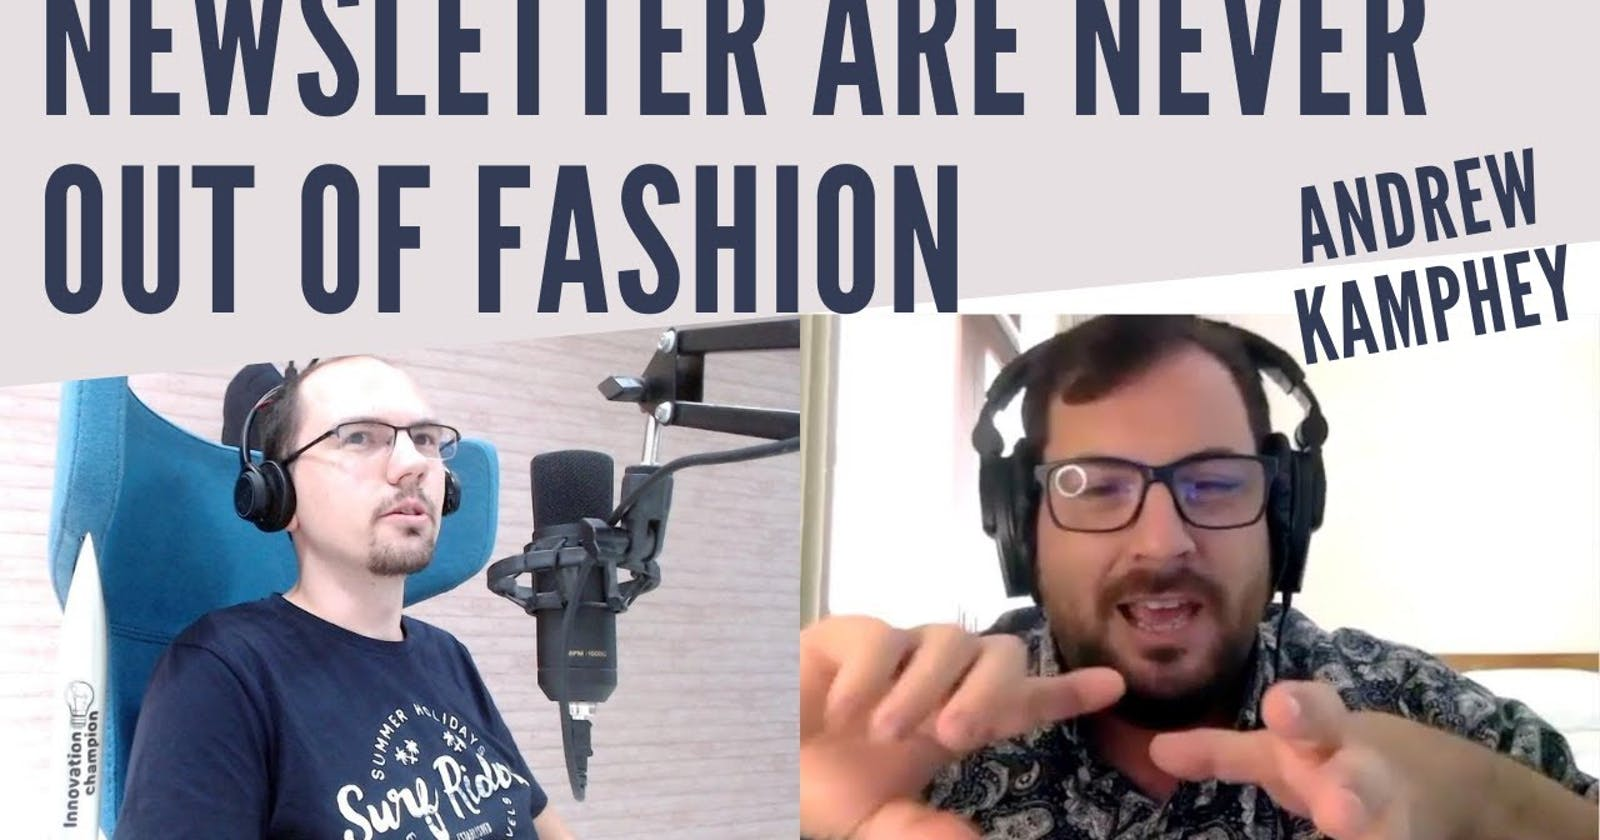 Ep#3 Newsletters are never out of fashion